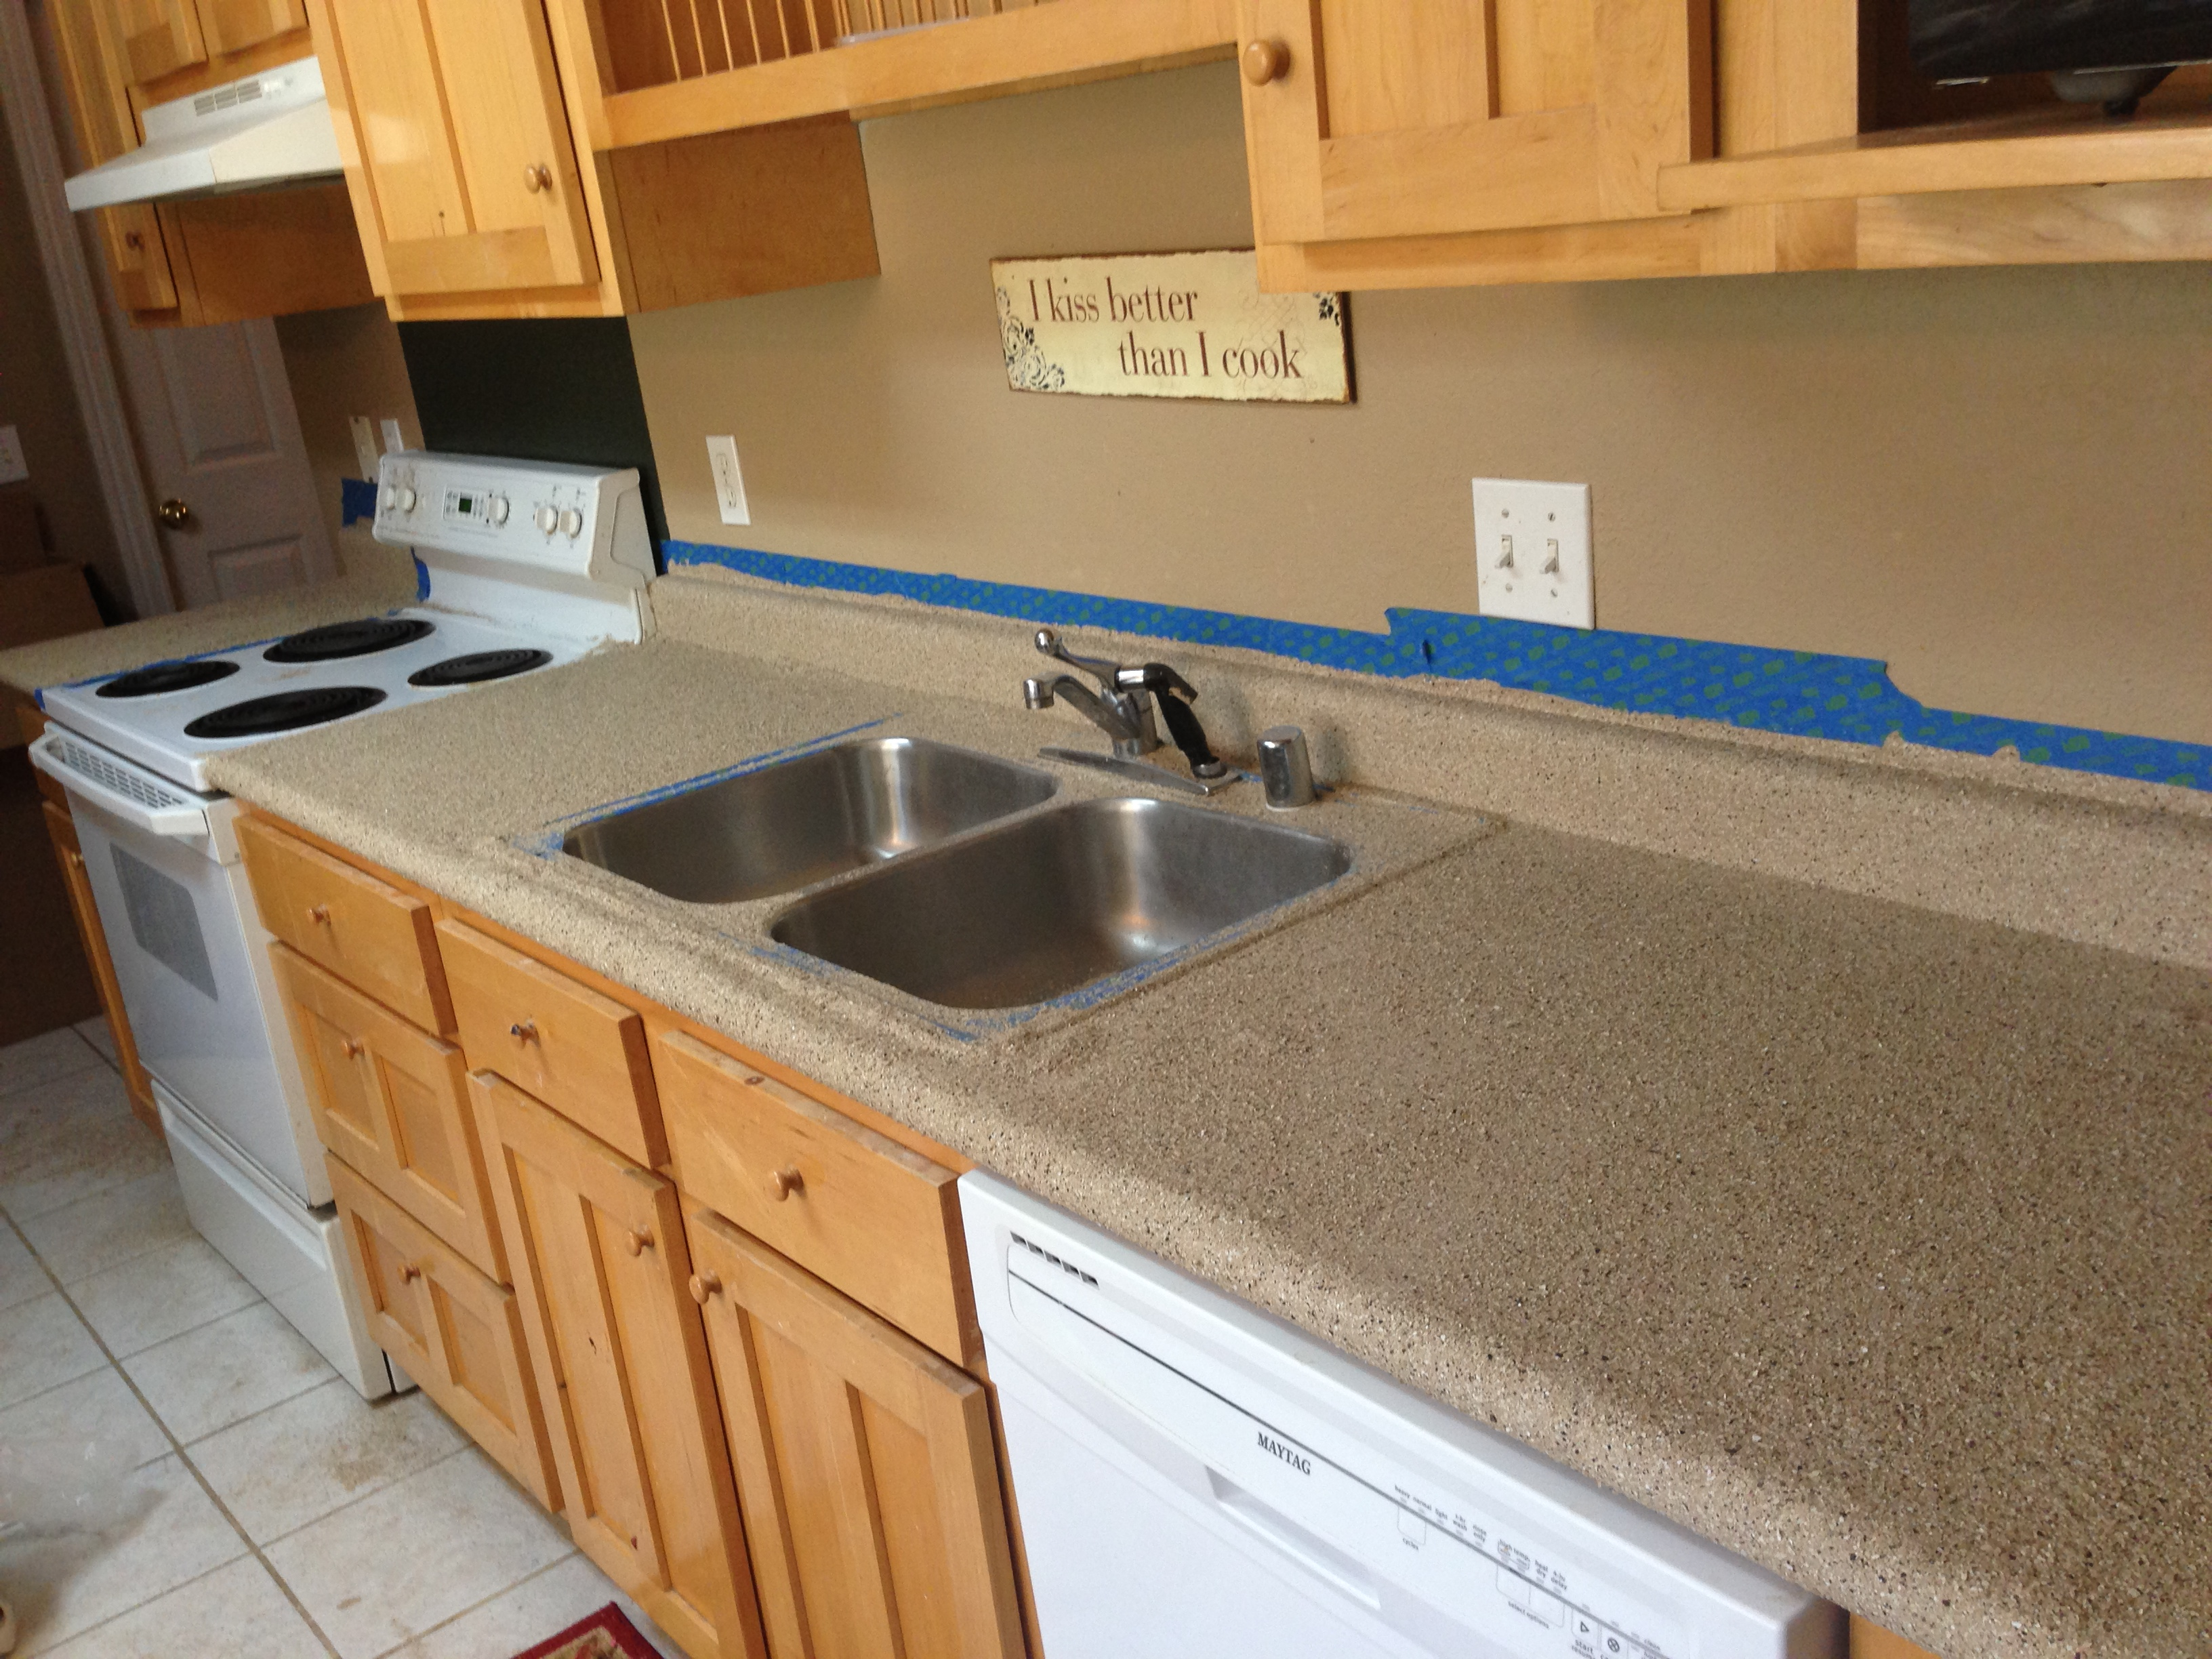 Rustoleum Countertop Paint How Long Between Coats : Kitchen & Wet Bar Countertop Makeover